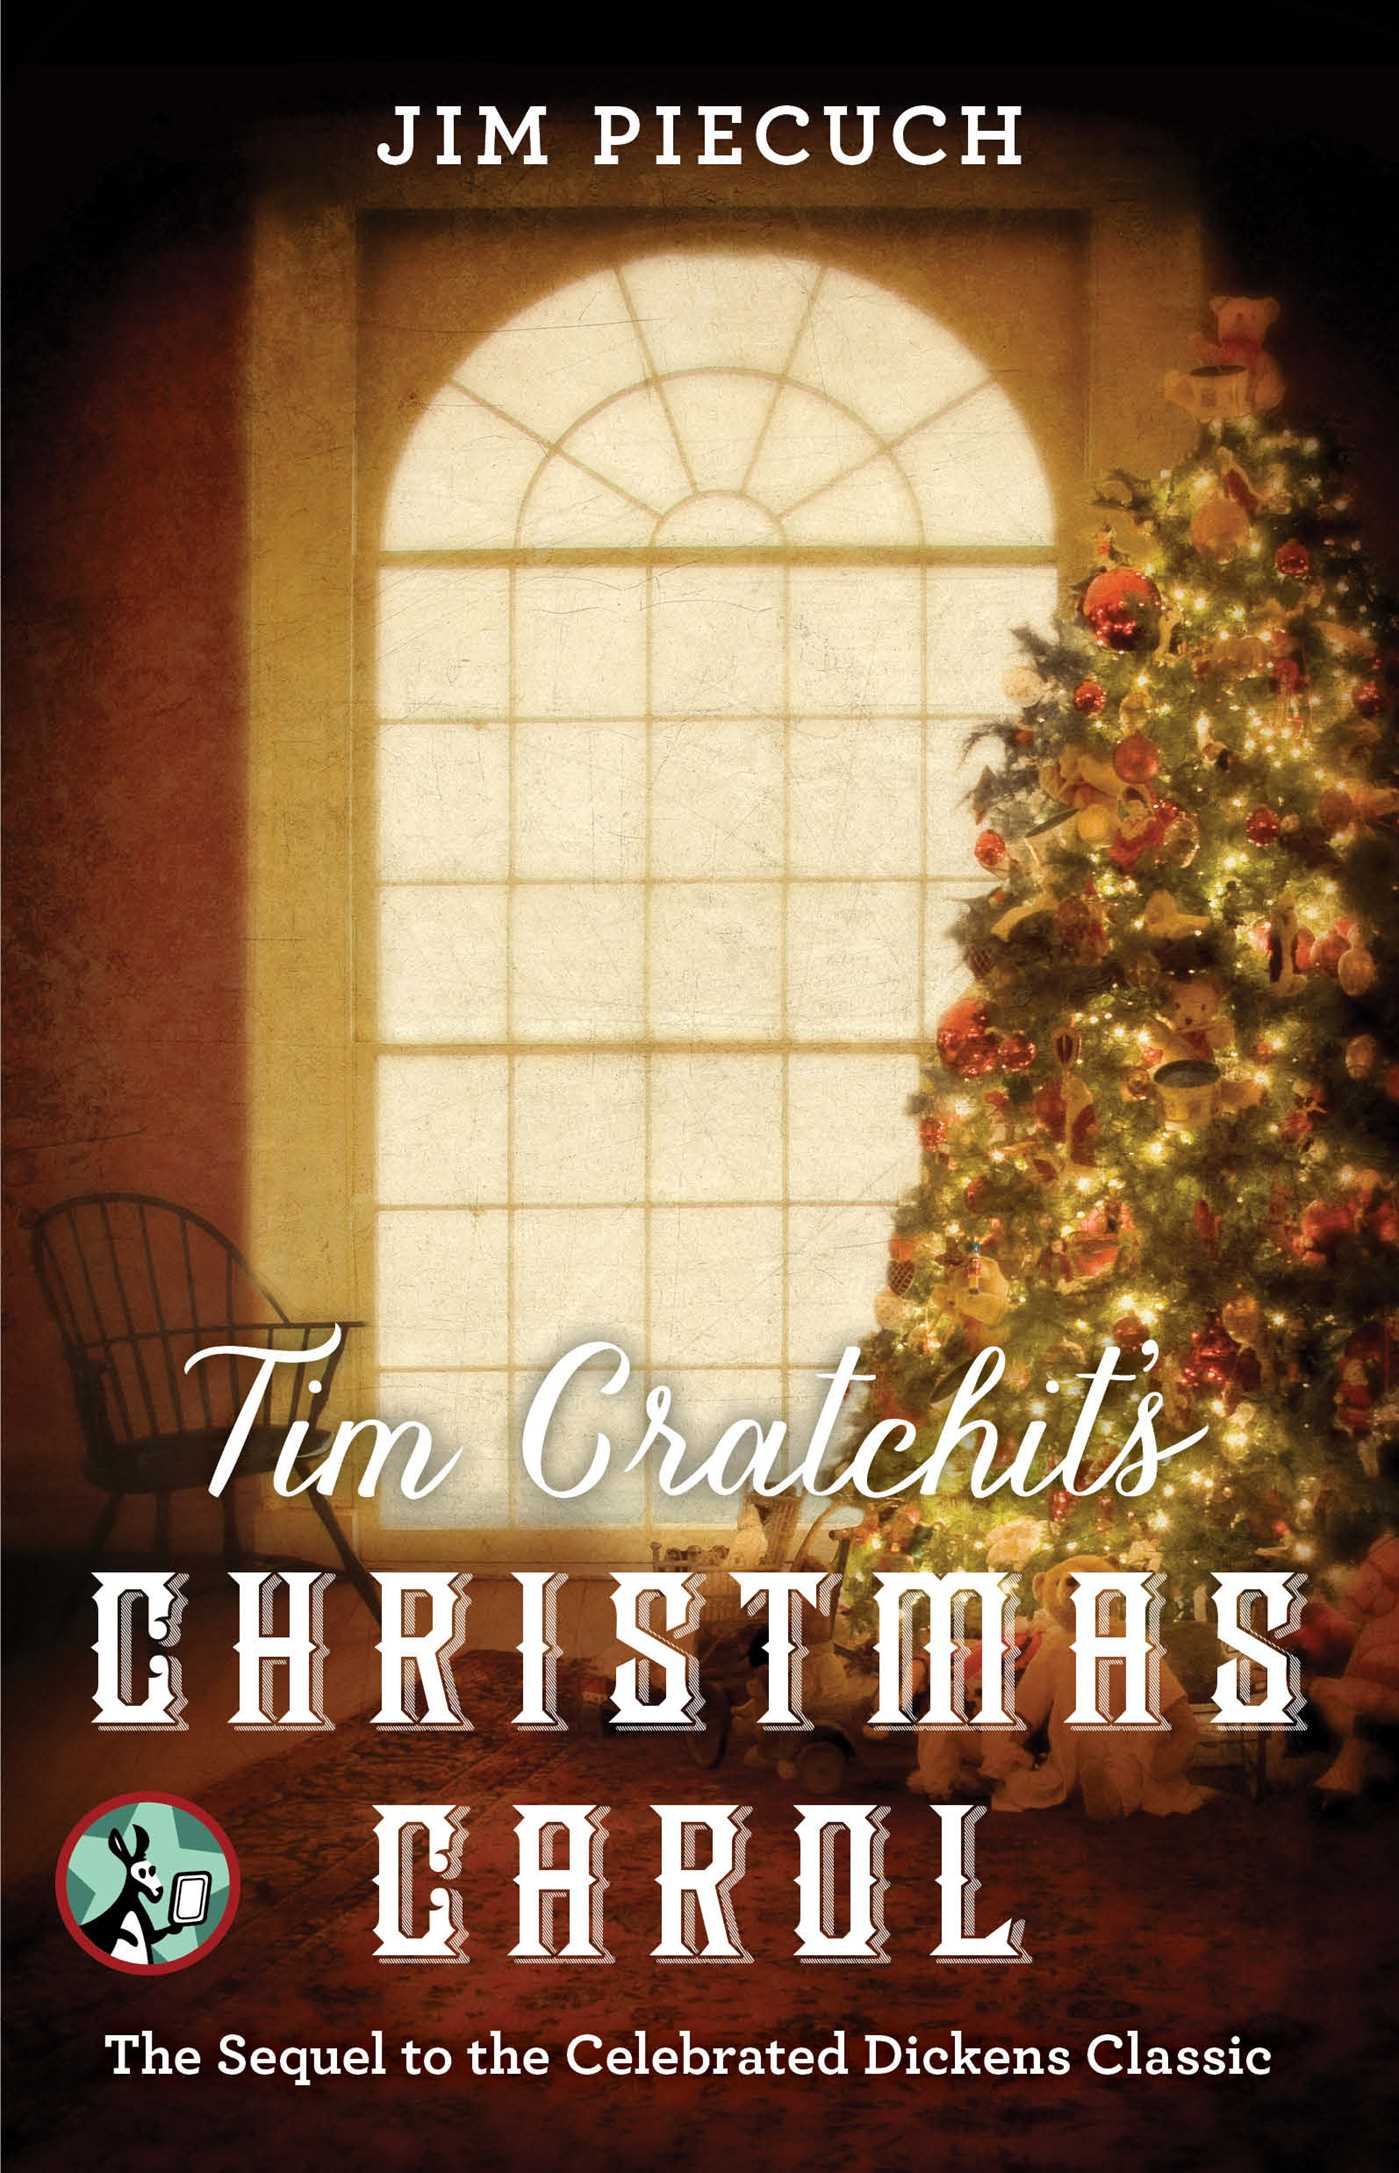 Tim-cratchits-christmas-carol-9781476766171_hr